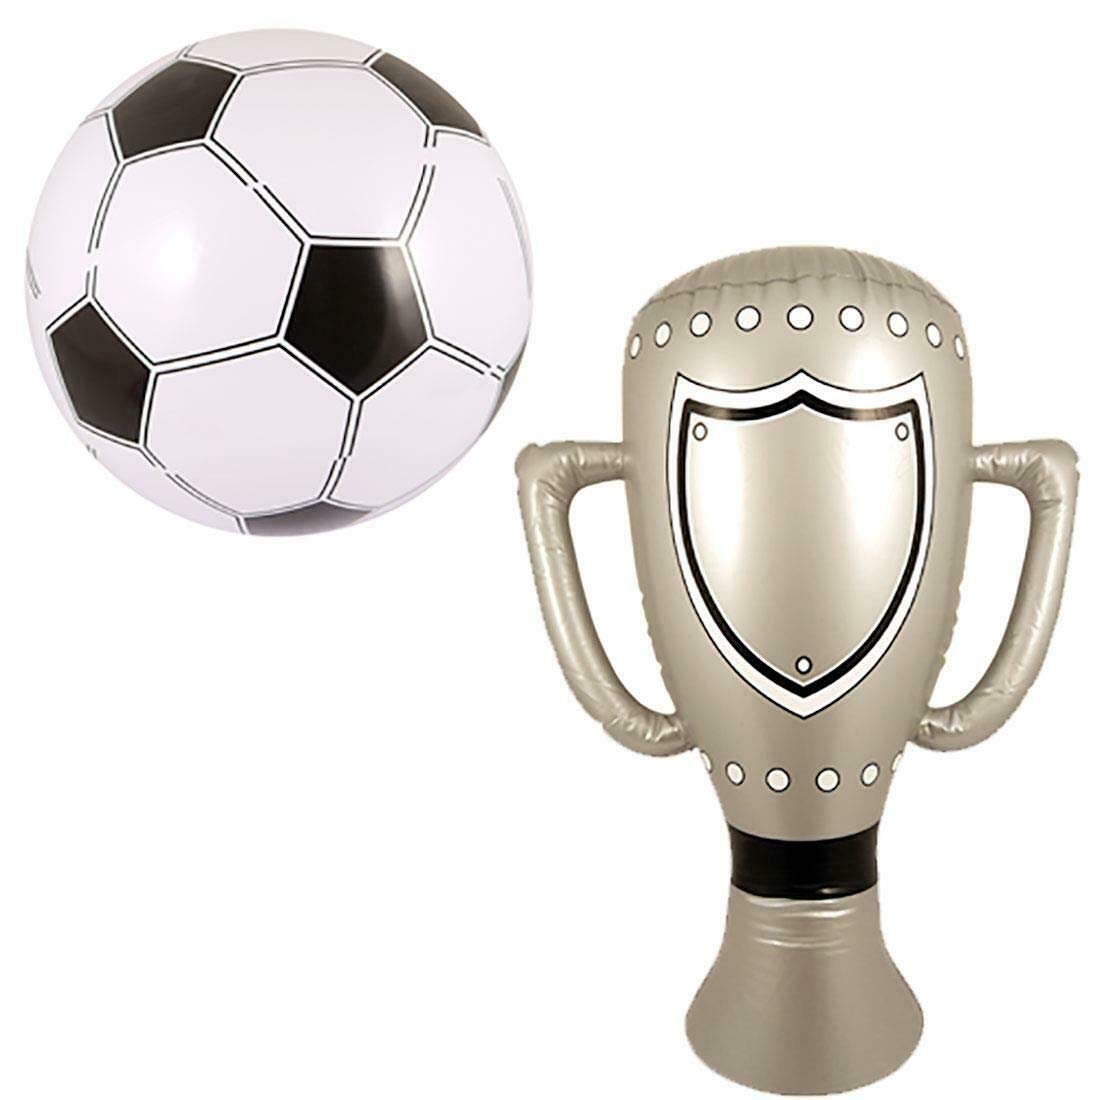 Amazon.com: My Choice Stuff - Conjunto de trofeo y fútbol ...